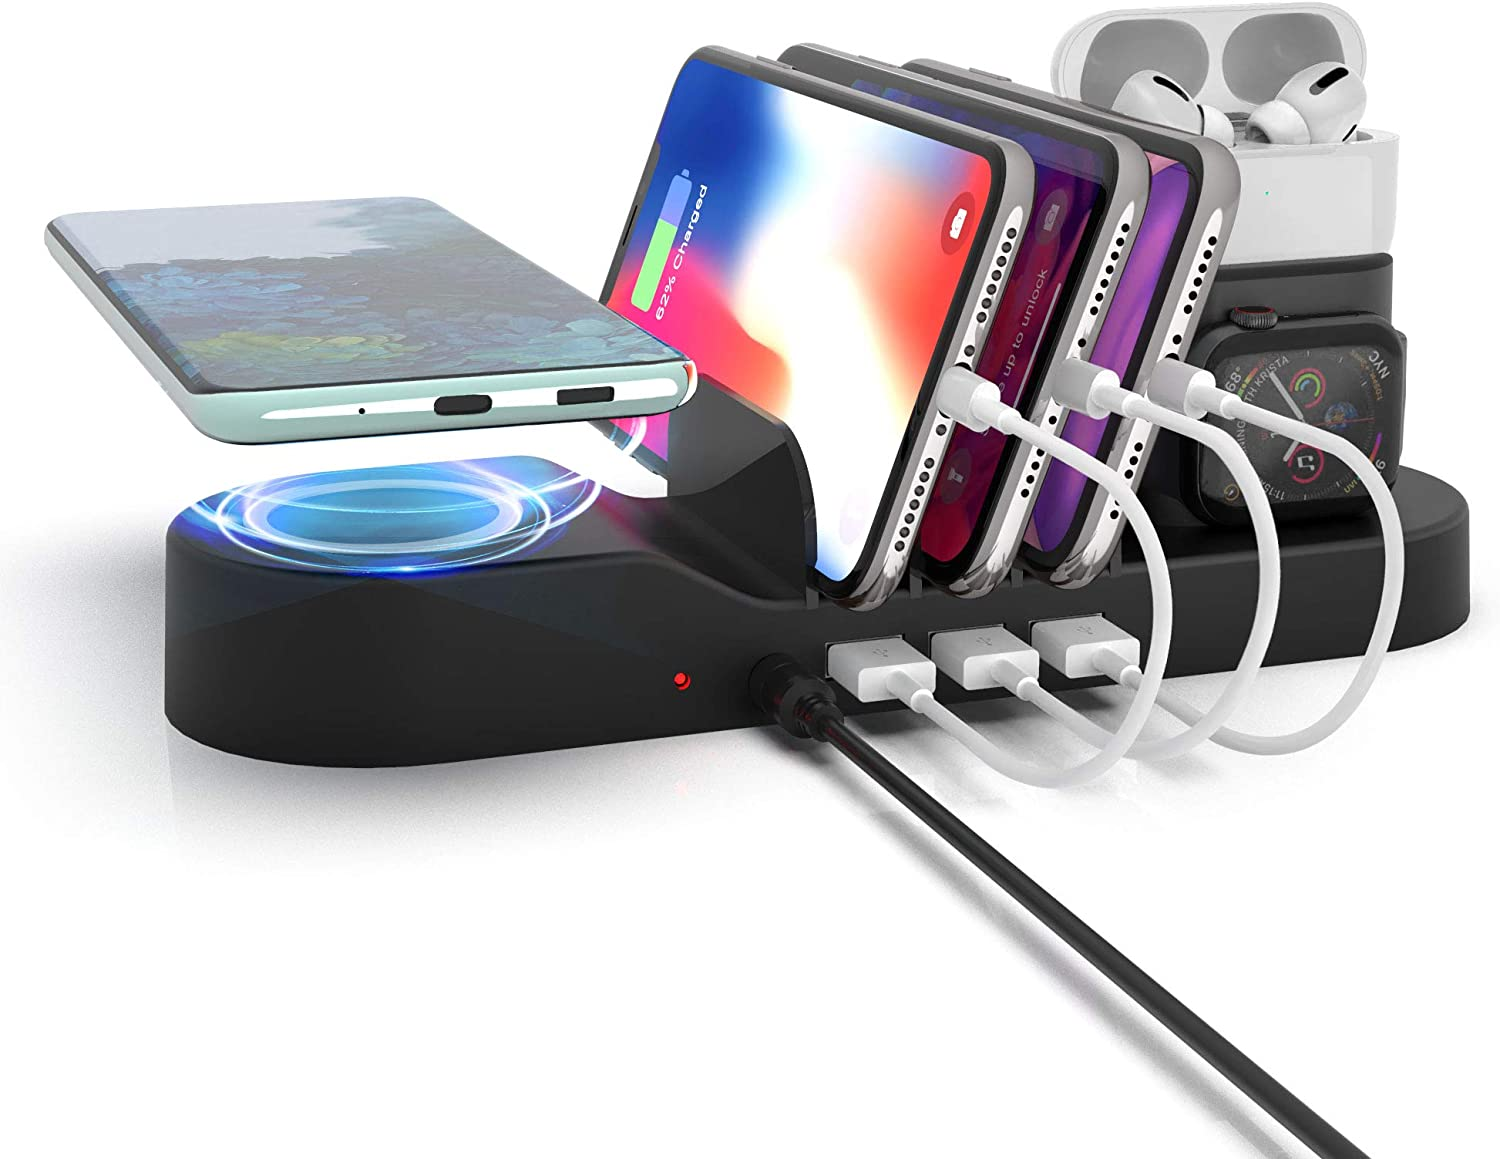 Imguardz 5 in 1 Charging Station for Multiple Devices, Multi Charger Organizer Docking Station with Wireless Charging 3 USB Port Compatible with iPhone/AirPods/iPad/iWatch/Android Phone, Black